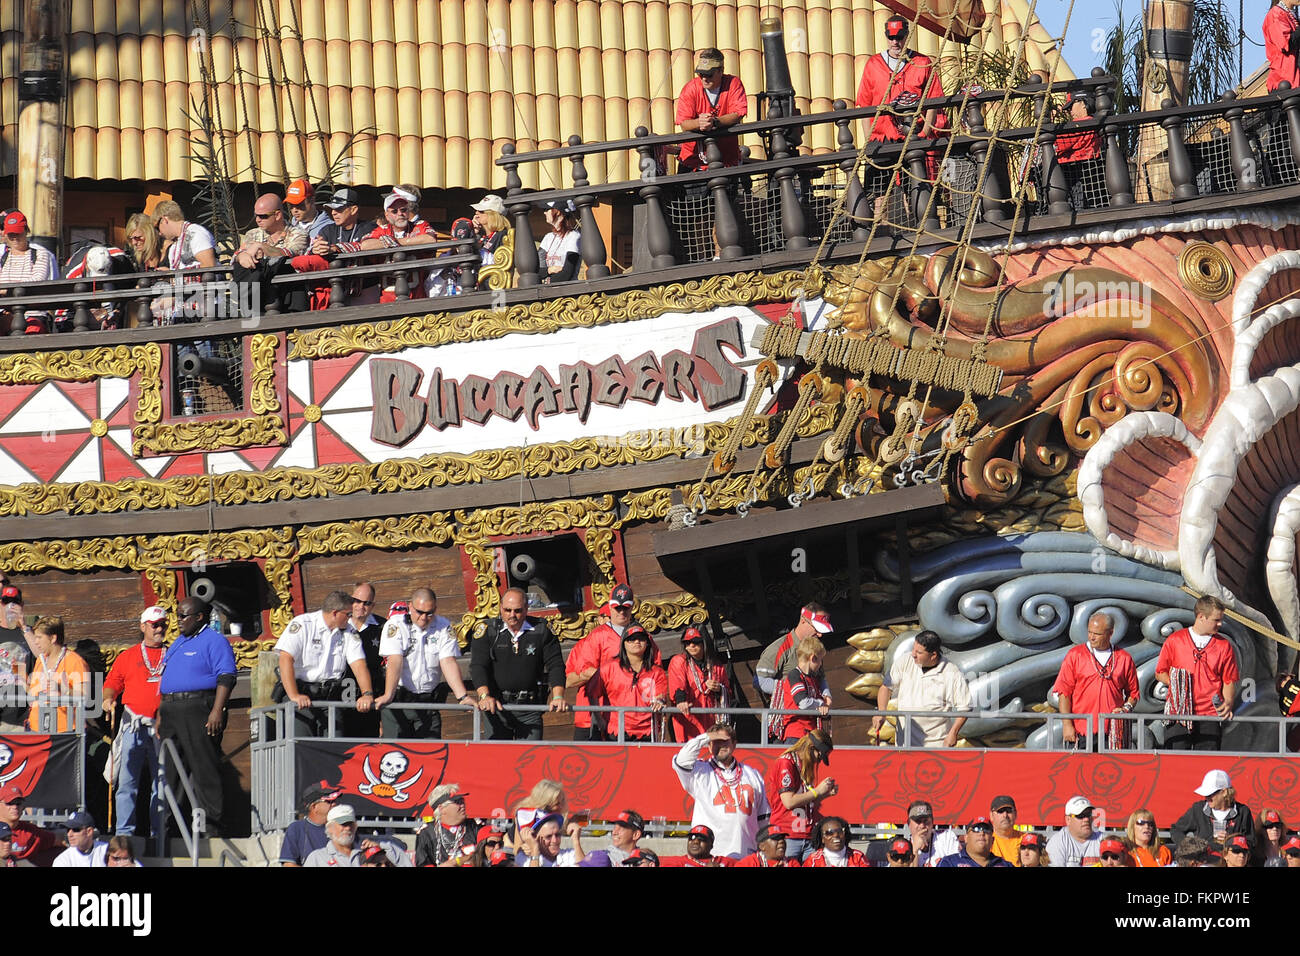 fed80eda Tampa, Fla, USA. 16th Nov, 2008. General view of Pirate Ship during ...